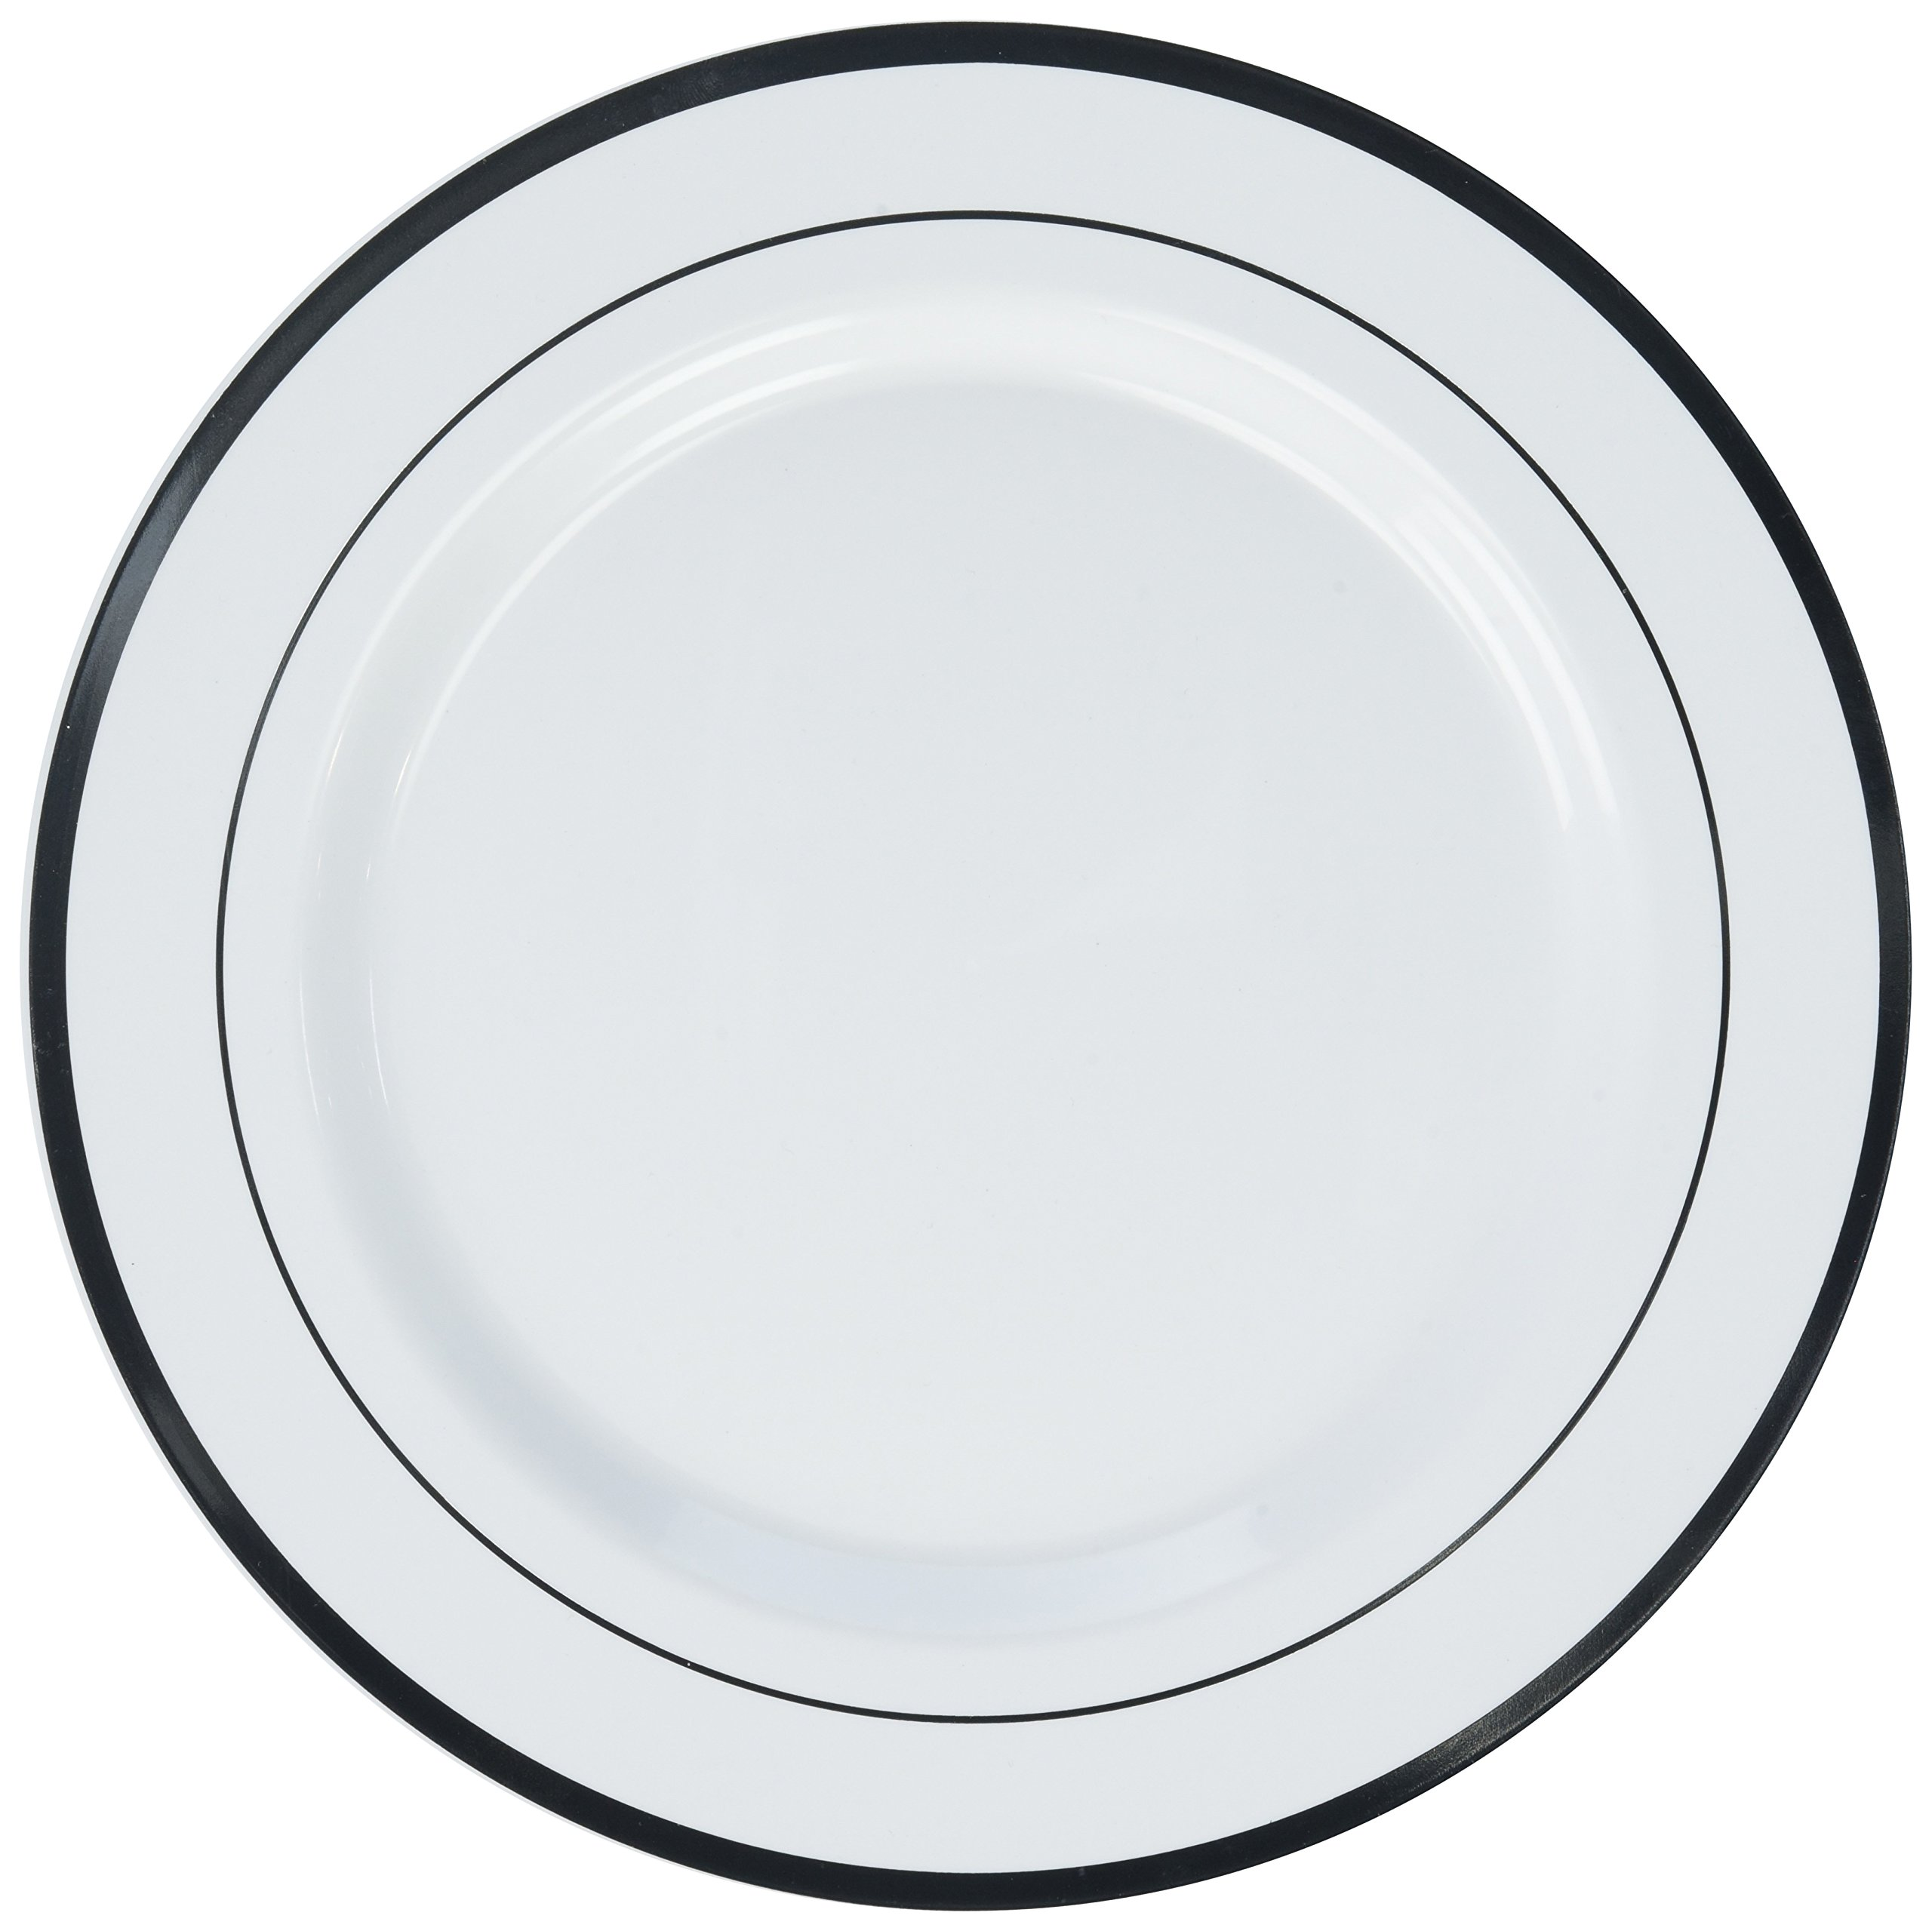 Amscan Elegant Premium Plastic Round & Reusable Dishware White with Silver Trim Pack 10 Party Supplies , 60 Pieces by Amscan